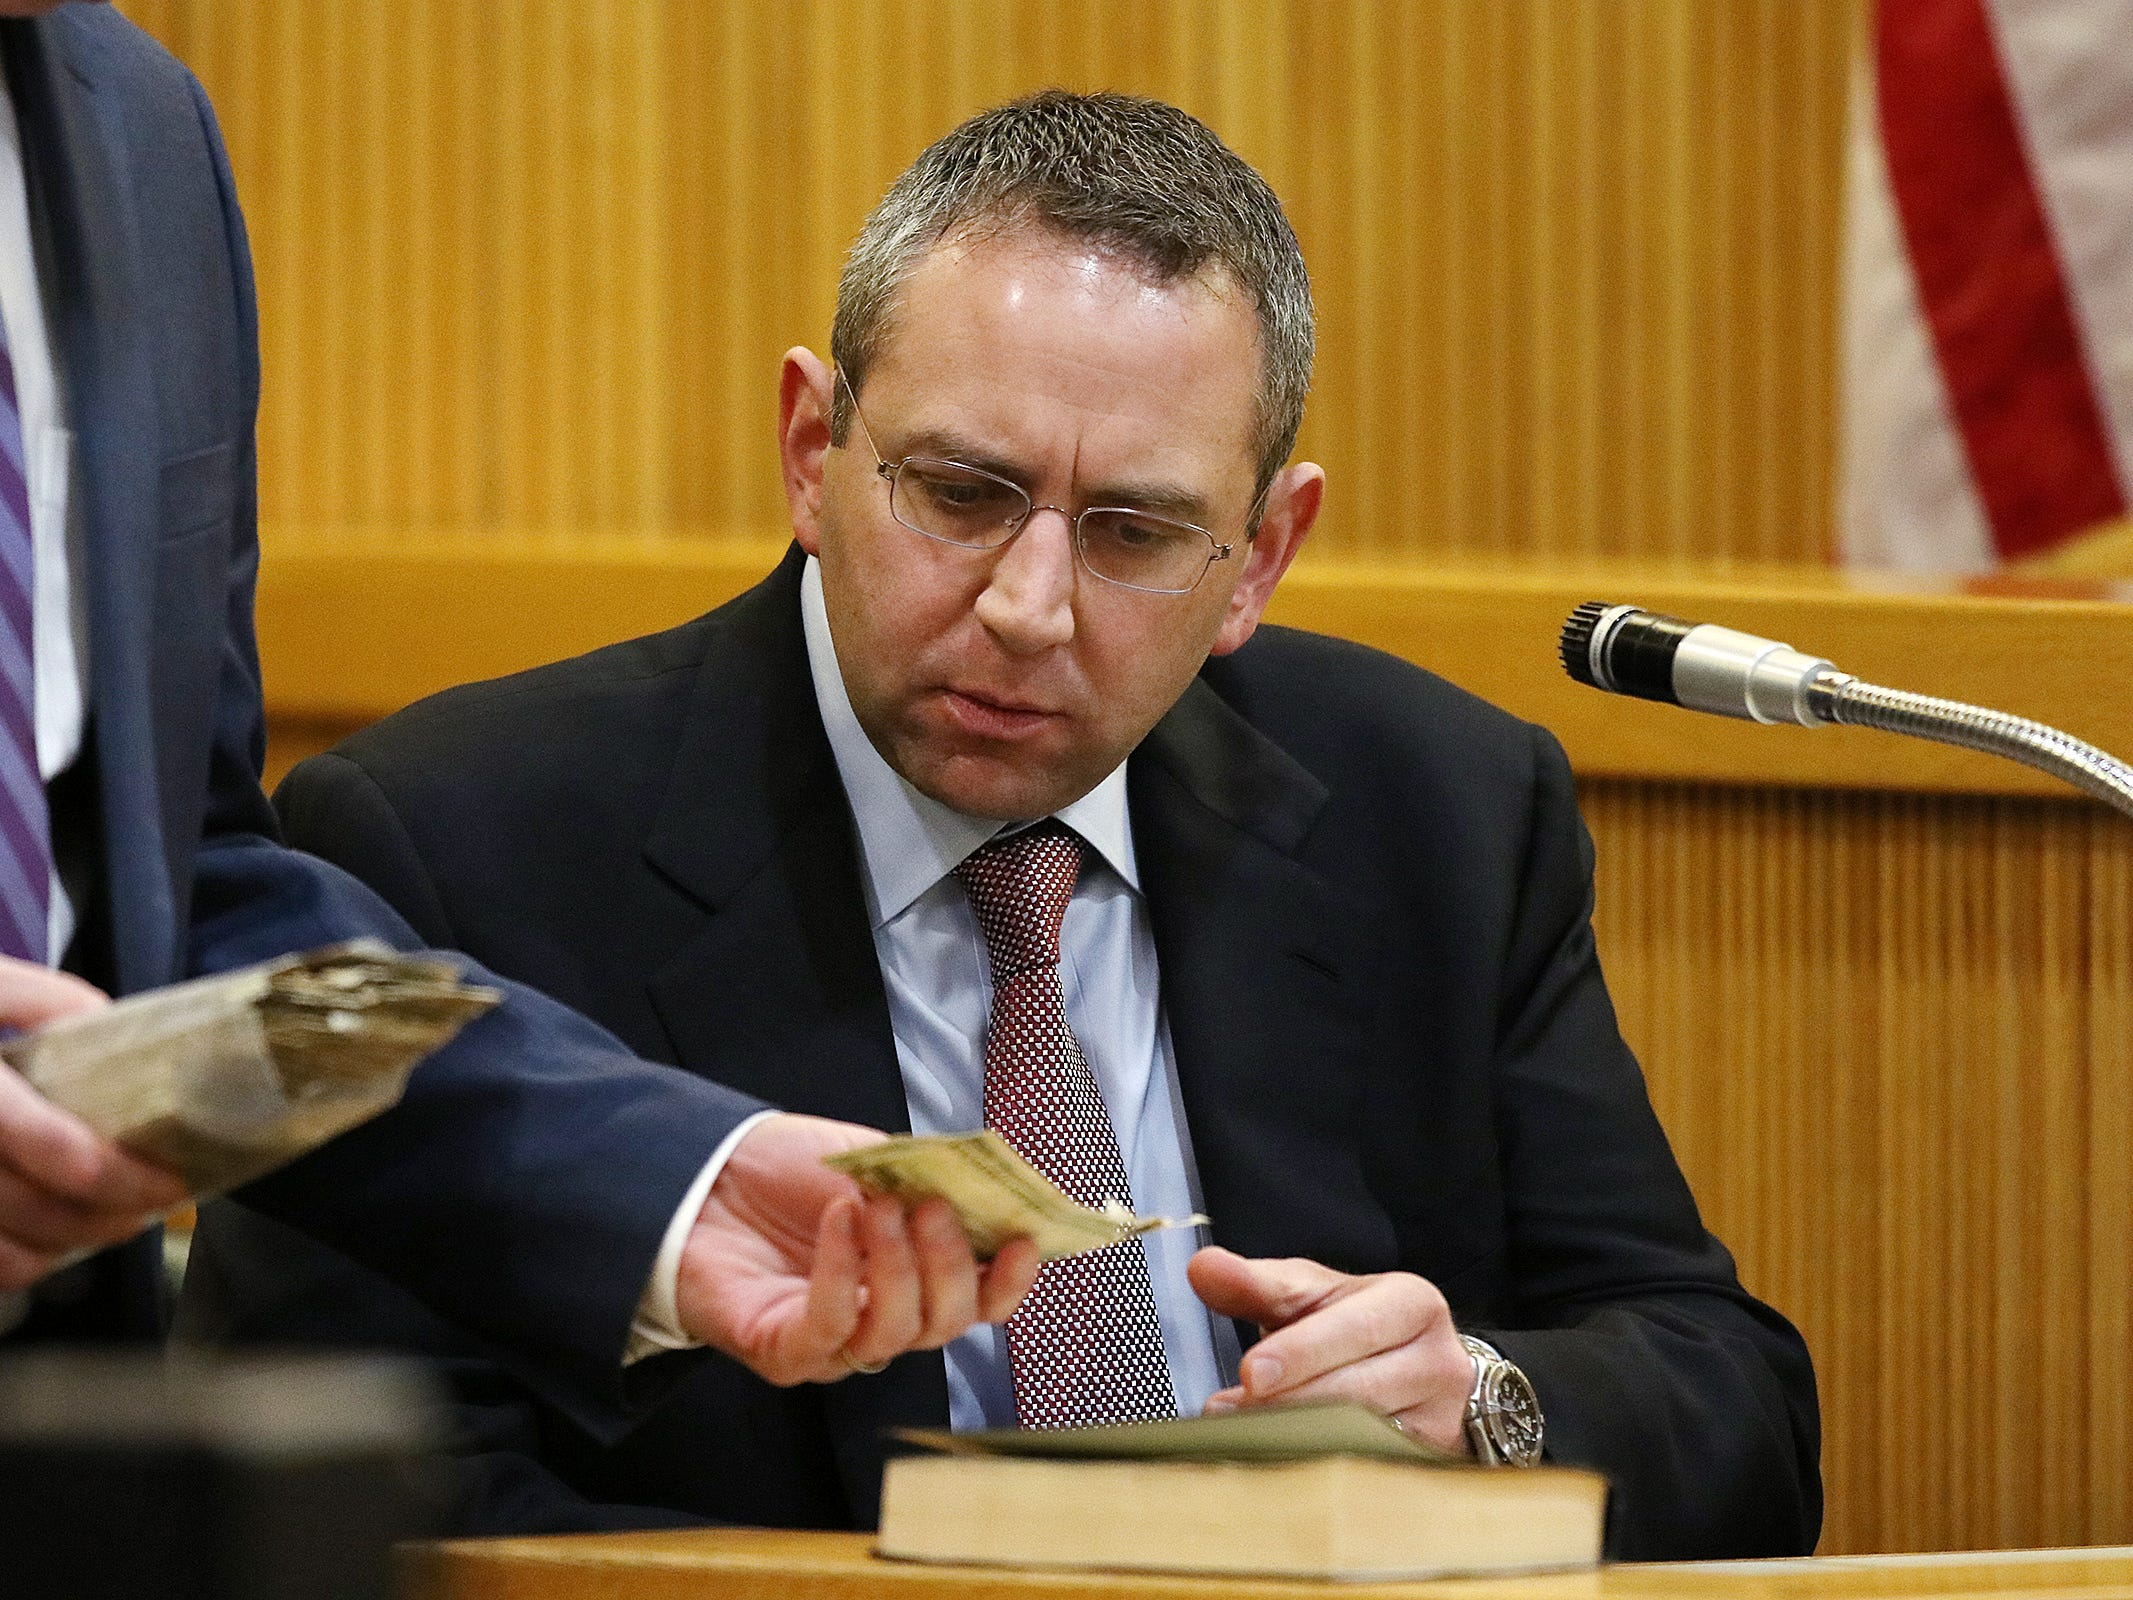 Detective Brian Weisbrot of the Monmouth County Prosecutor's Office, answers questions during redirect about the age of the money found in Sandy Hook as he testifies during the trial of Liam McAtasney, who is charged with the murder of former high school classmate, Sarah Stern, before Superior Court Judge Richard W. English at the Monmouth County Courthouse in Freehold, NJ Wednesday, February 20, 2019.